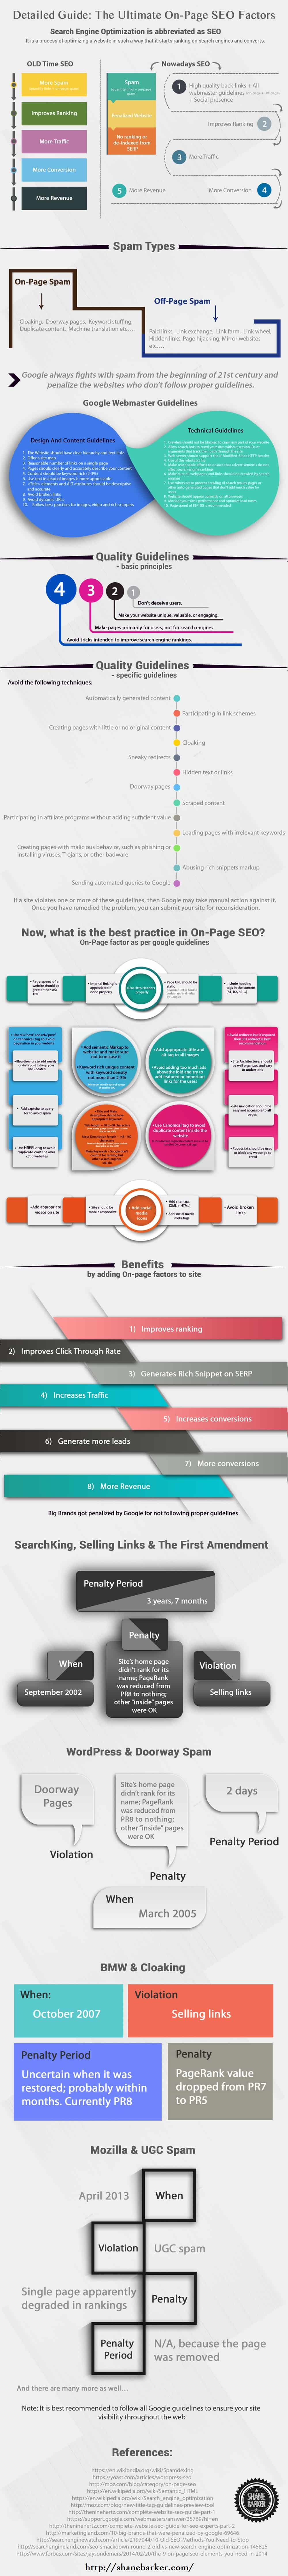 On Page Seo Factors - Gifographics